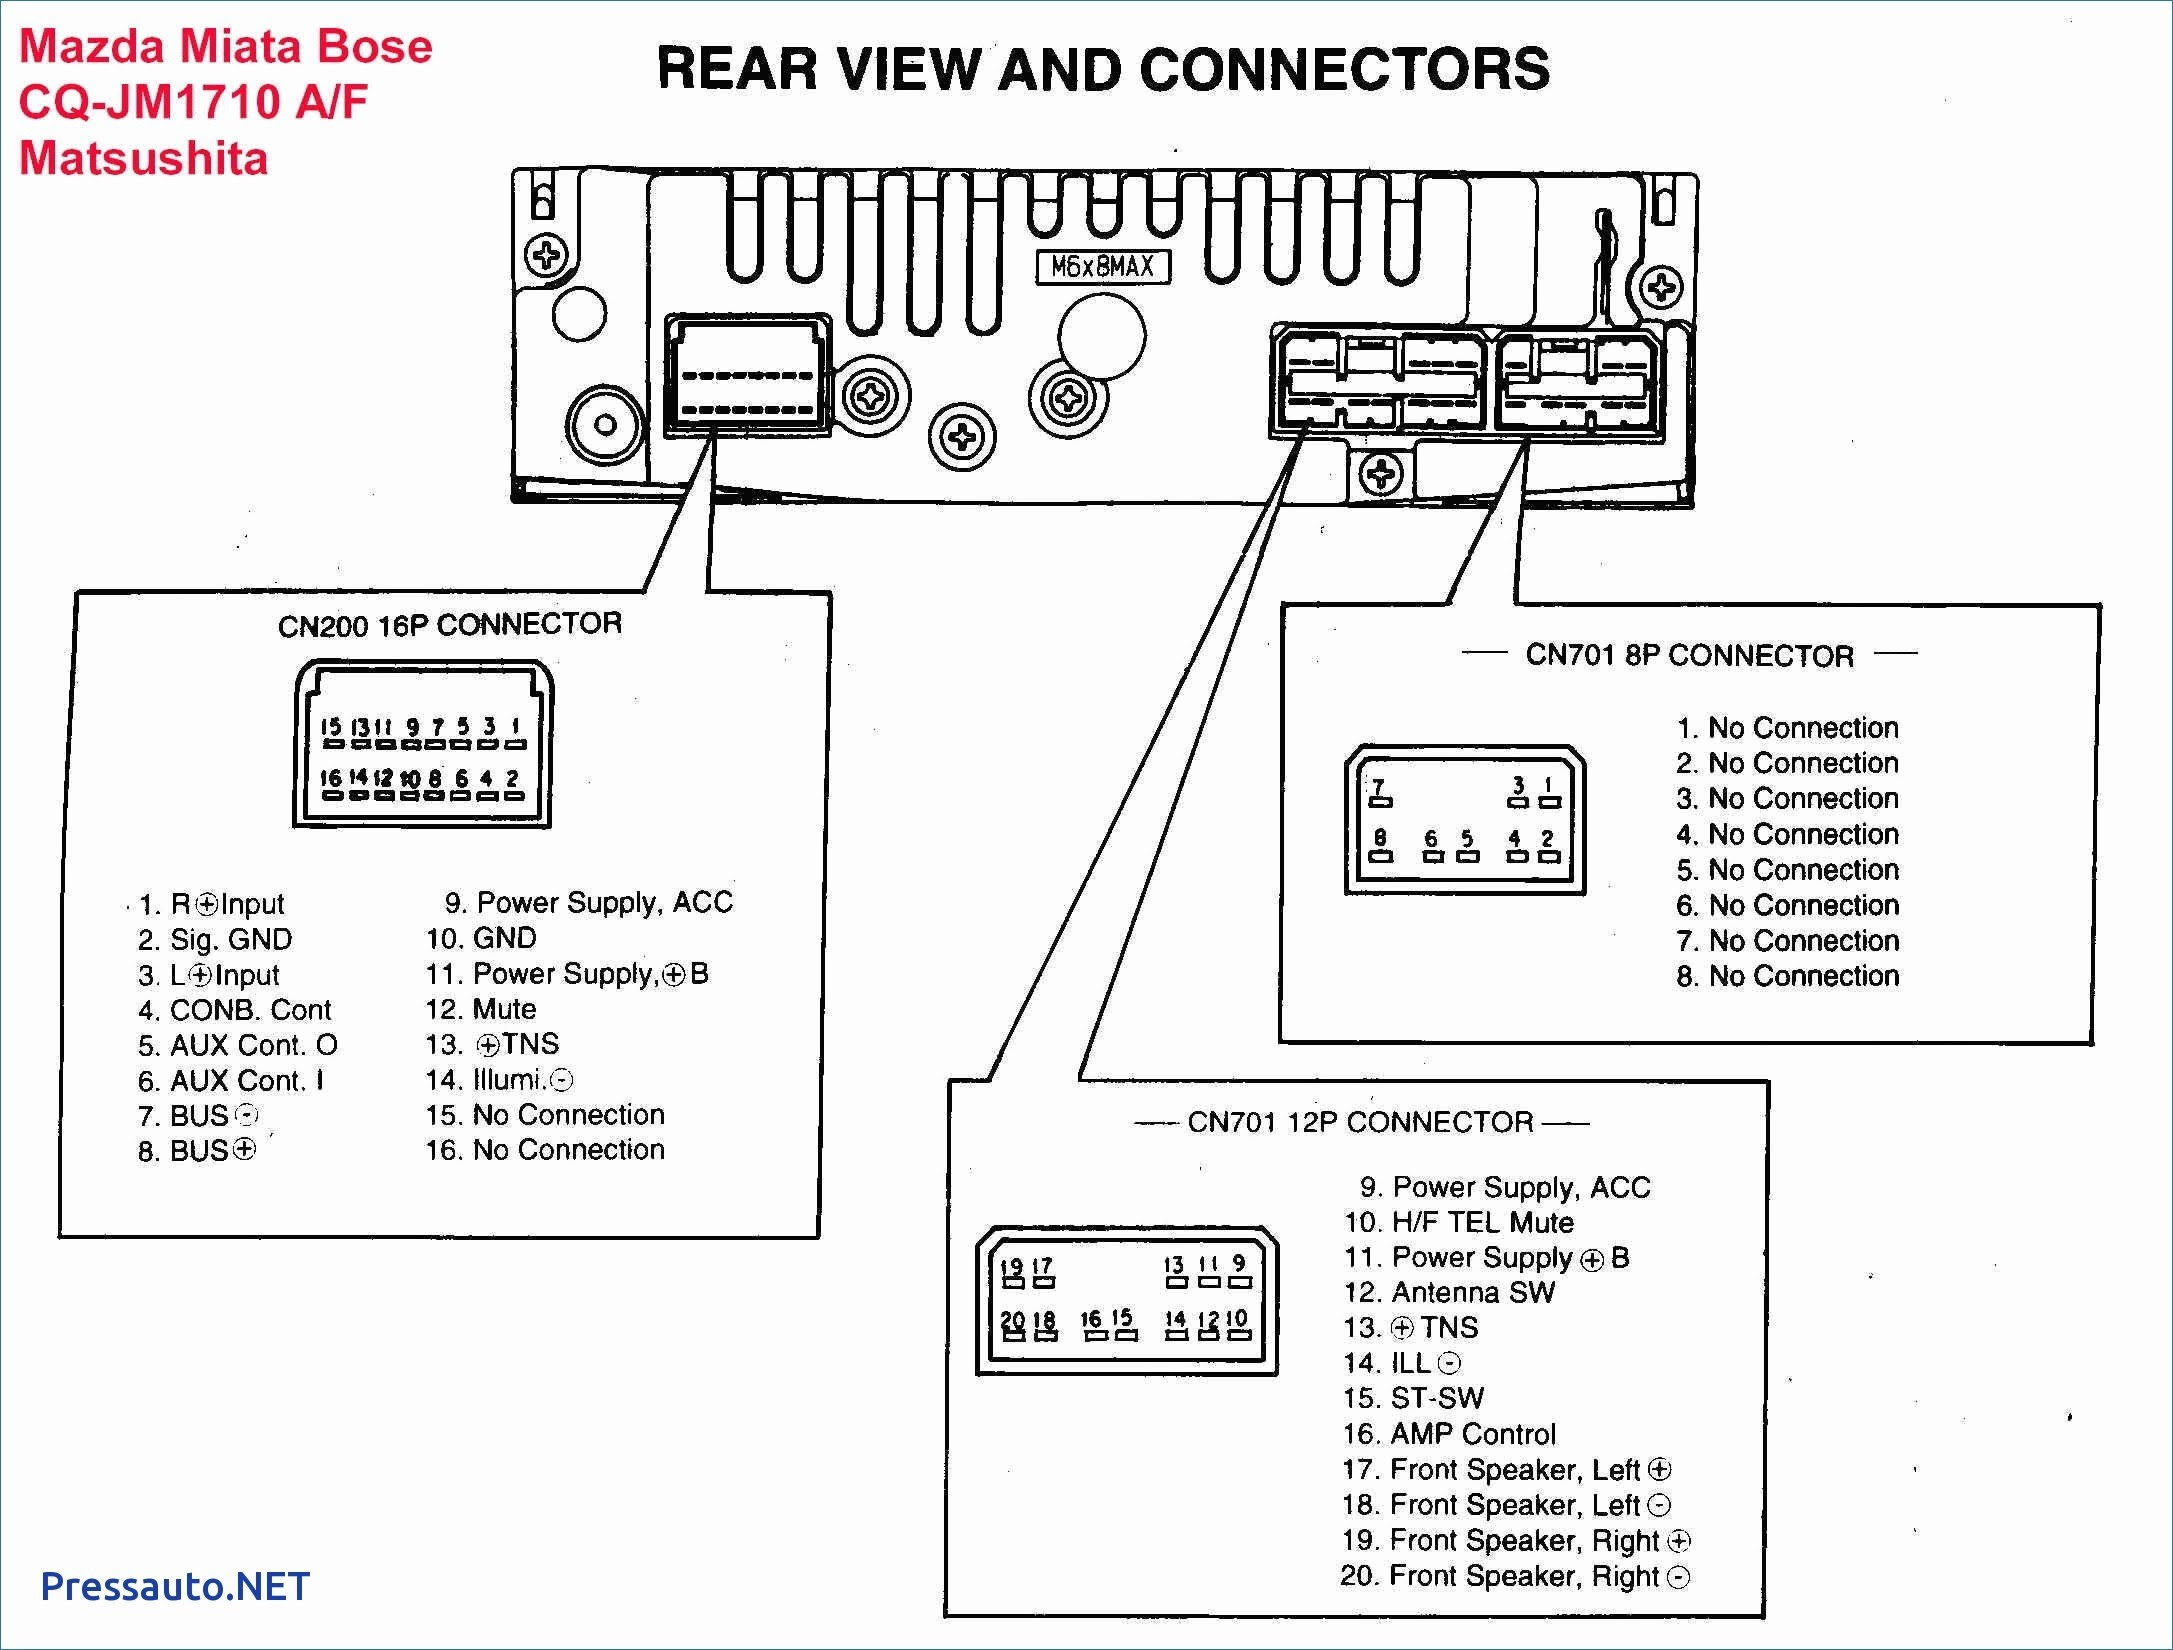 Infiniti Qx4 Stereo Wiring | fame-global wiring diagram -  fame-global.ilcasaledelbarone.itilcasaledelbarone.it